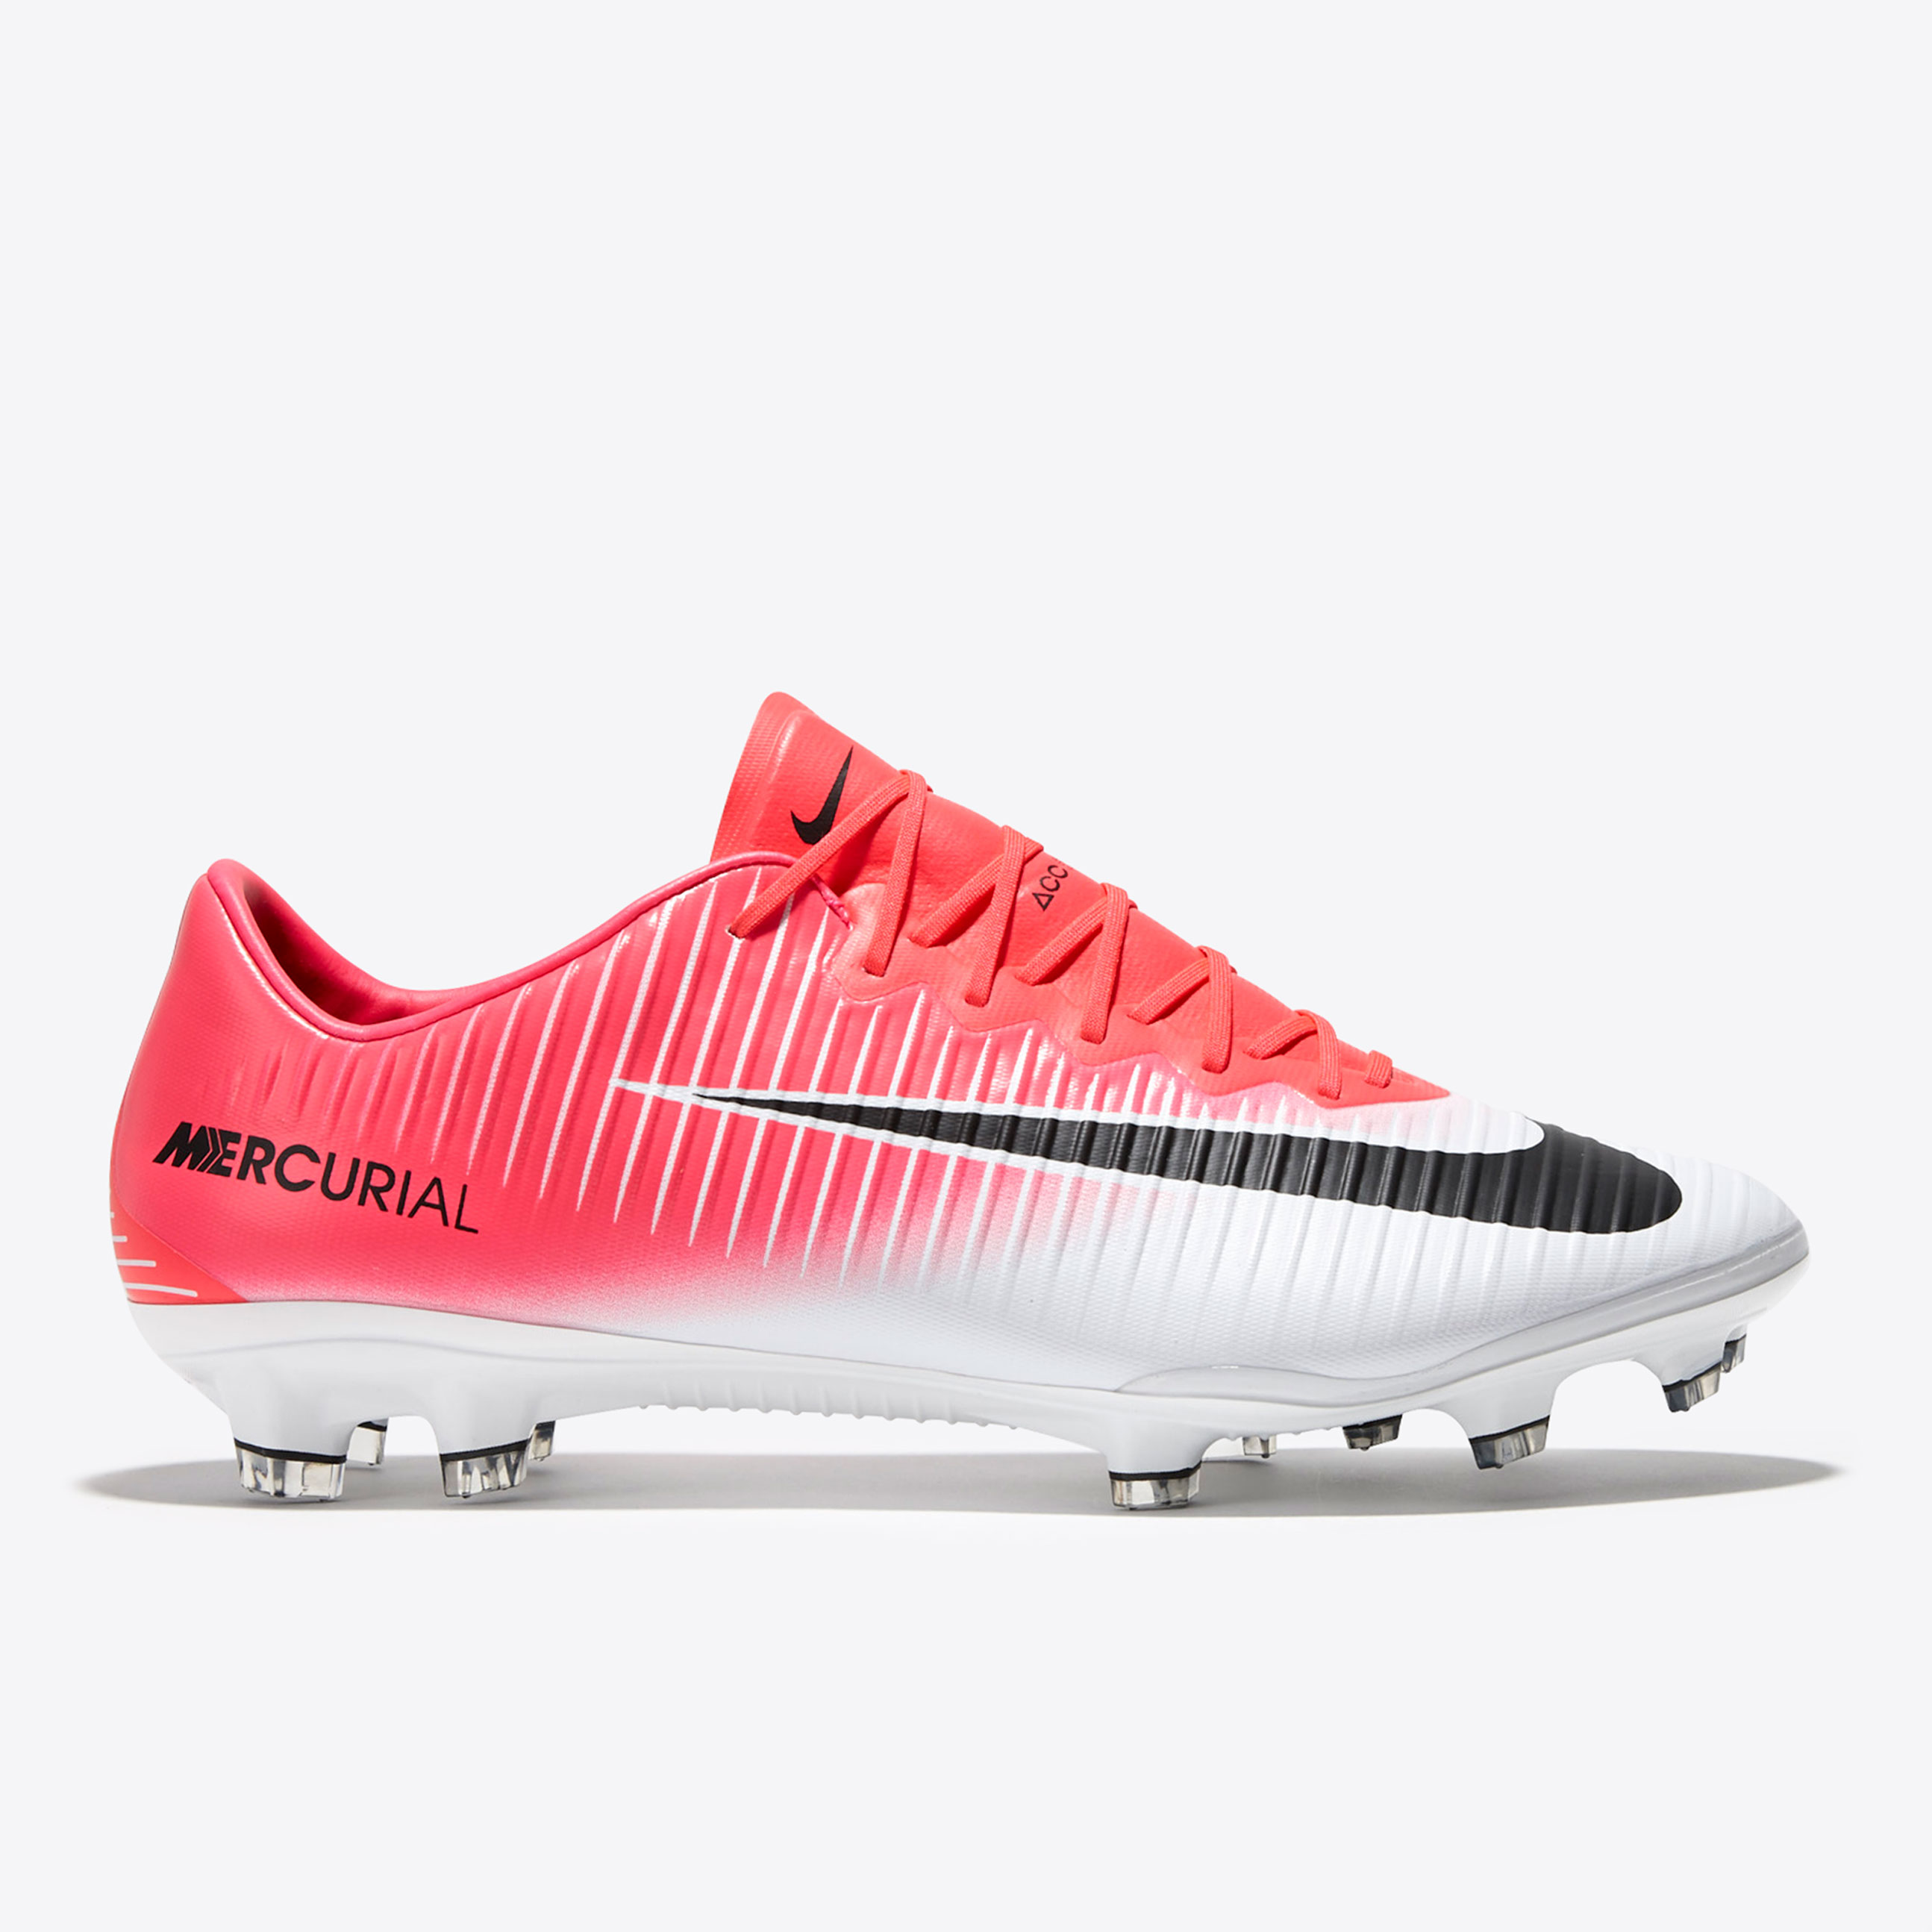 Buy Nike Mercurial Superfly V   Vapor XI Rugby Boots - compare ... 670a0b1f8